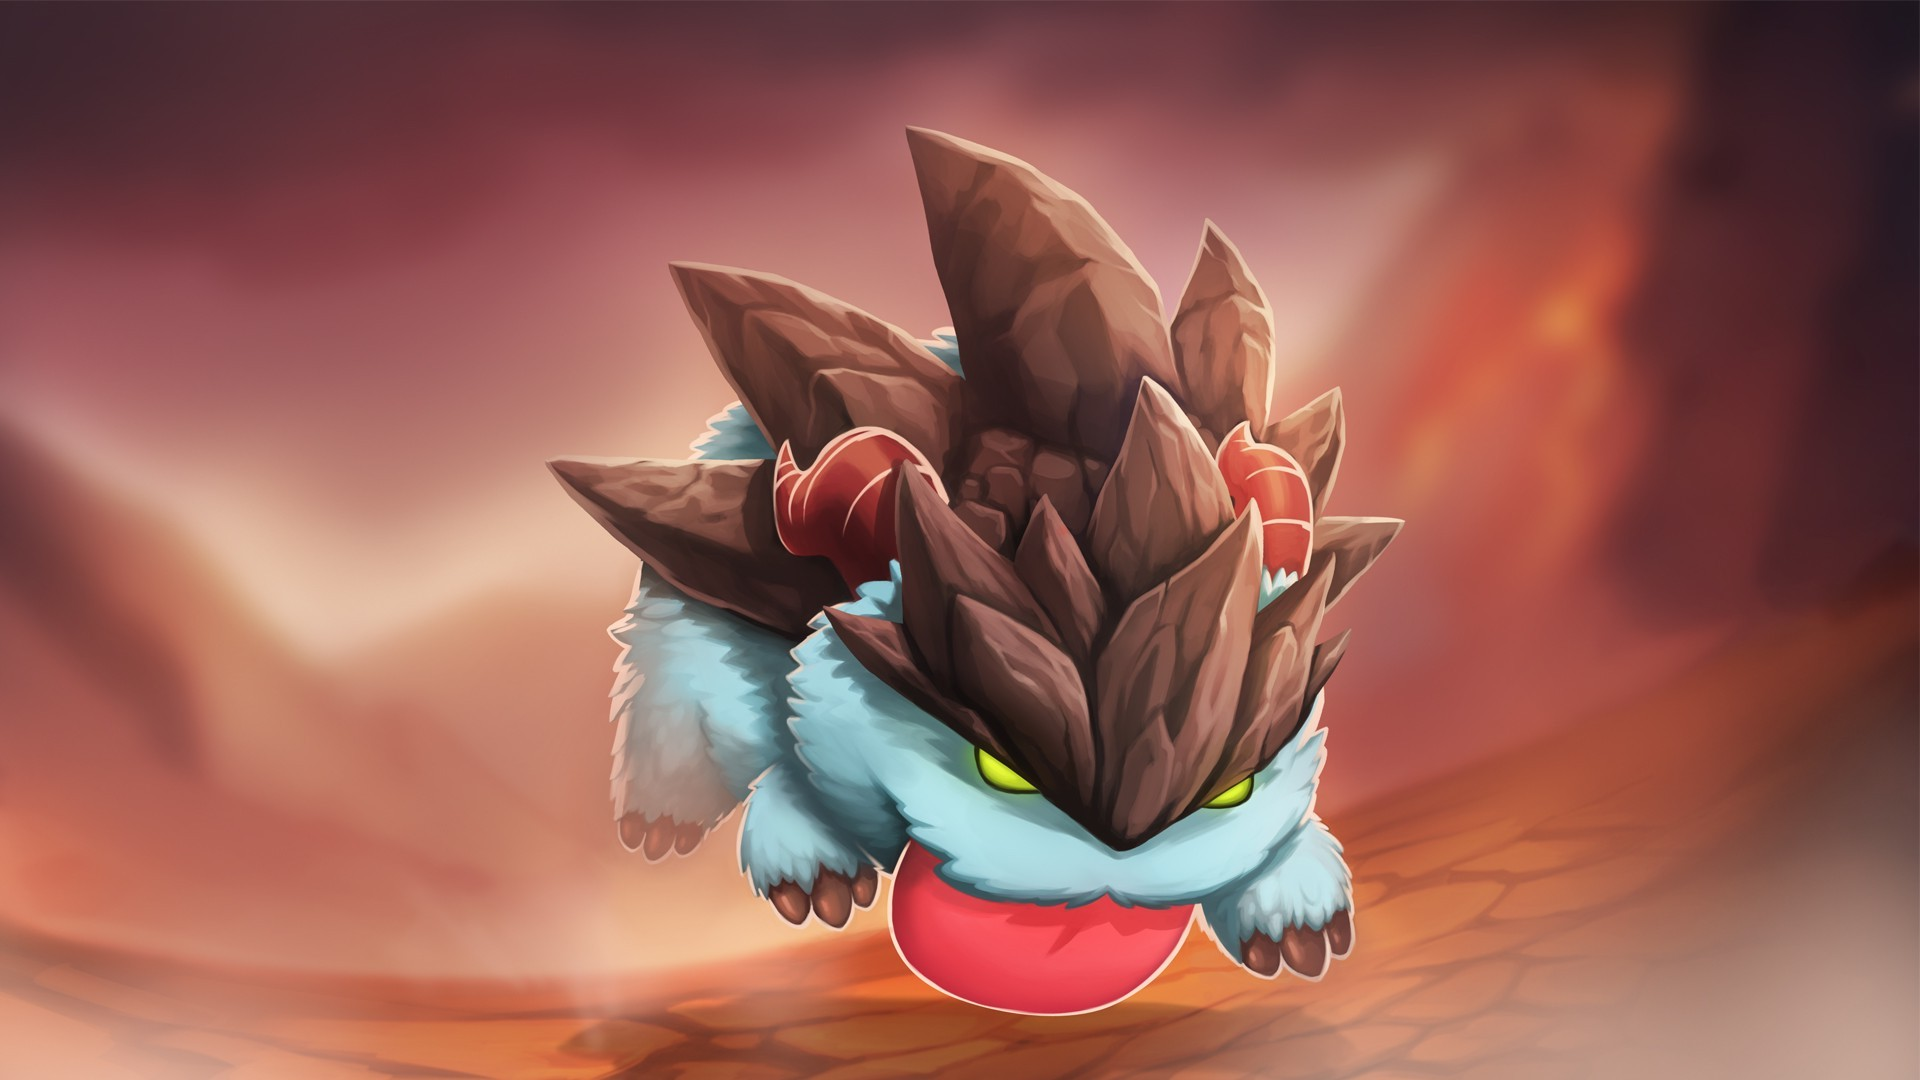 Animal Computer Wallpaper League Of Legends Poro Malphite Wallpapers Hd Desktop